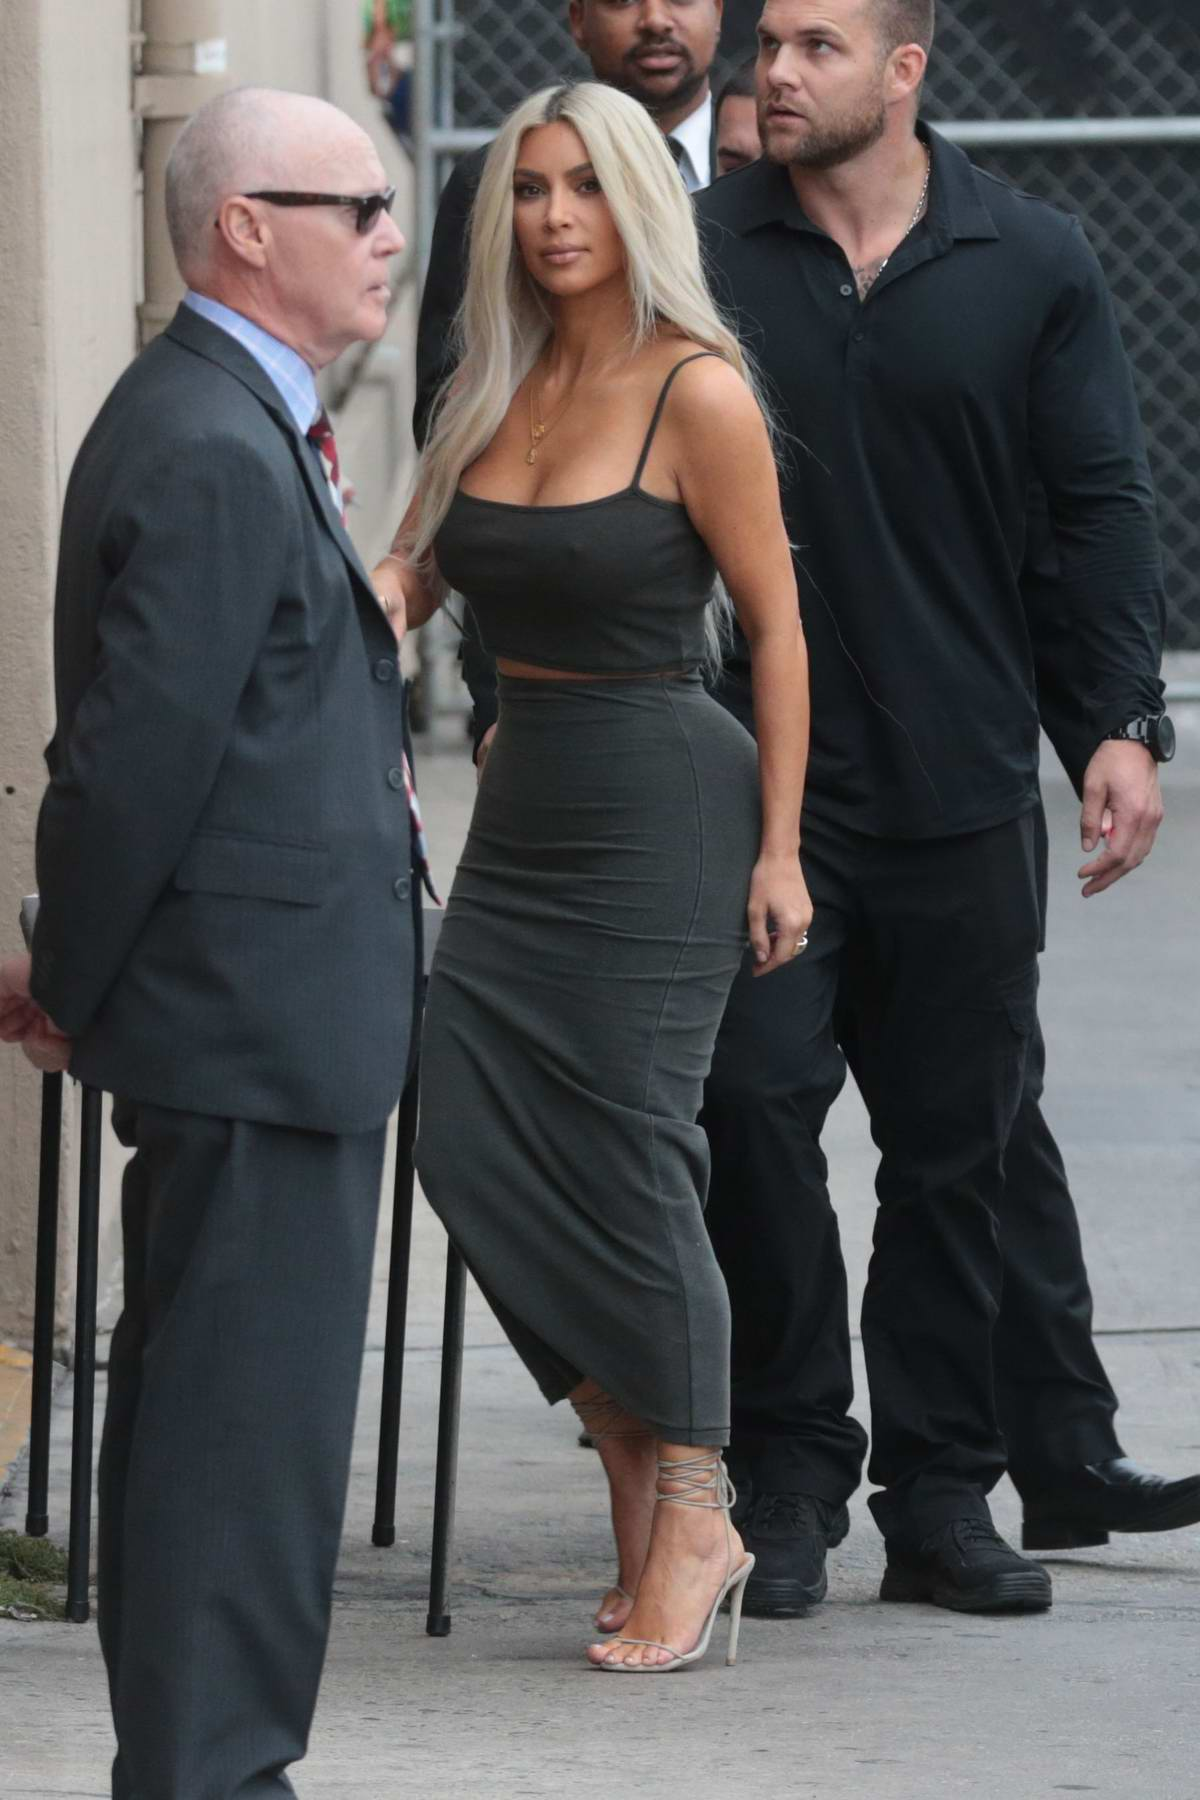 Kim Kardashian arriving at Jimmy Kimmel Live in Hollywood, Los Angeles